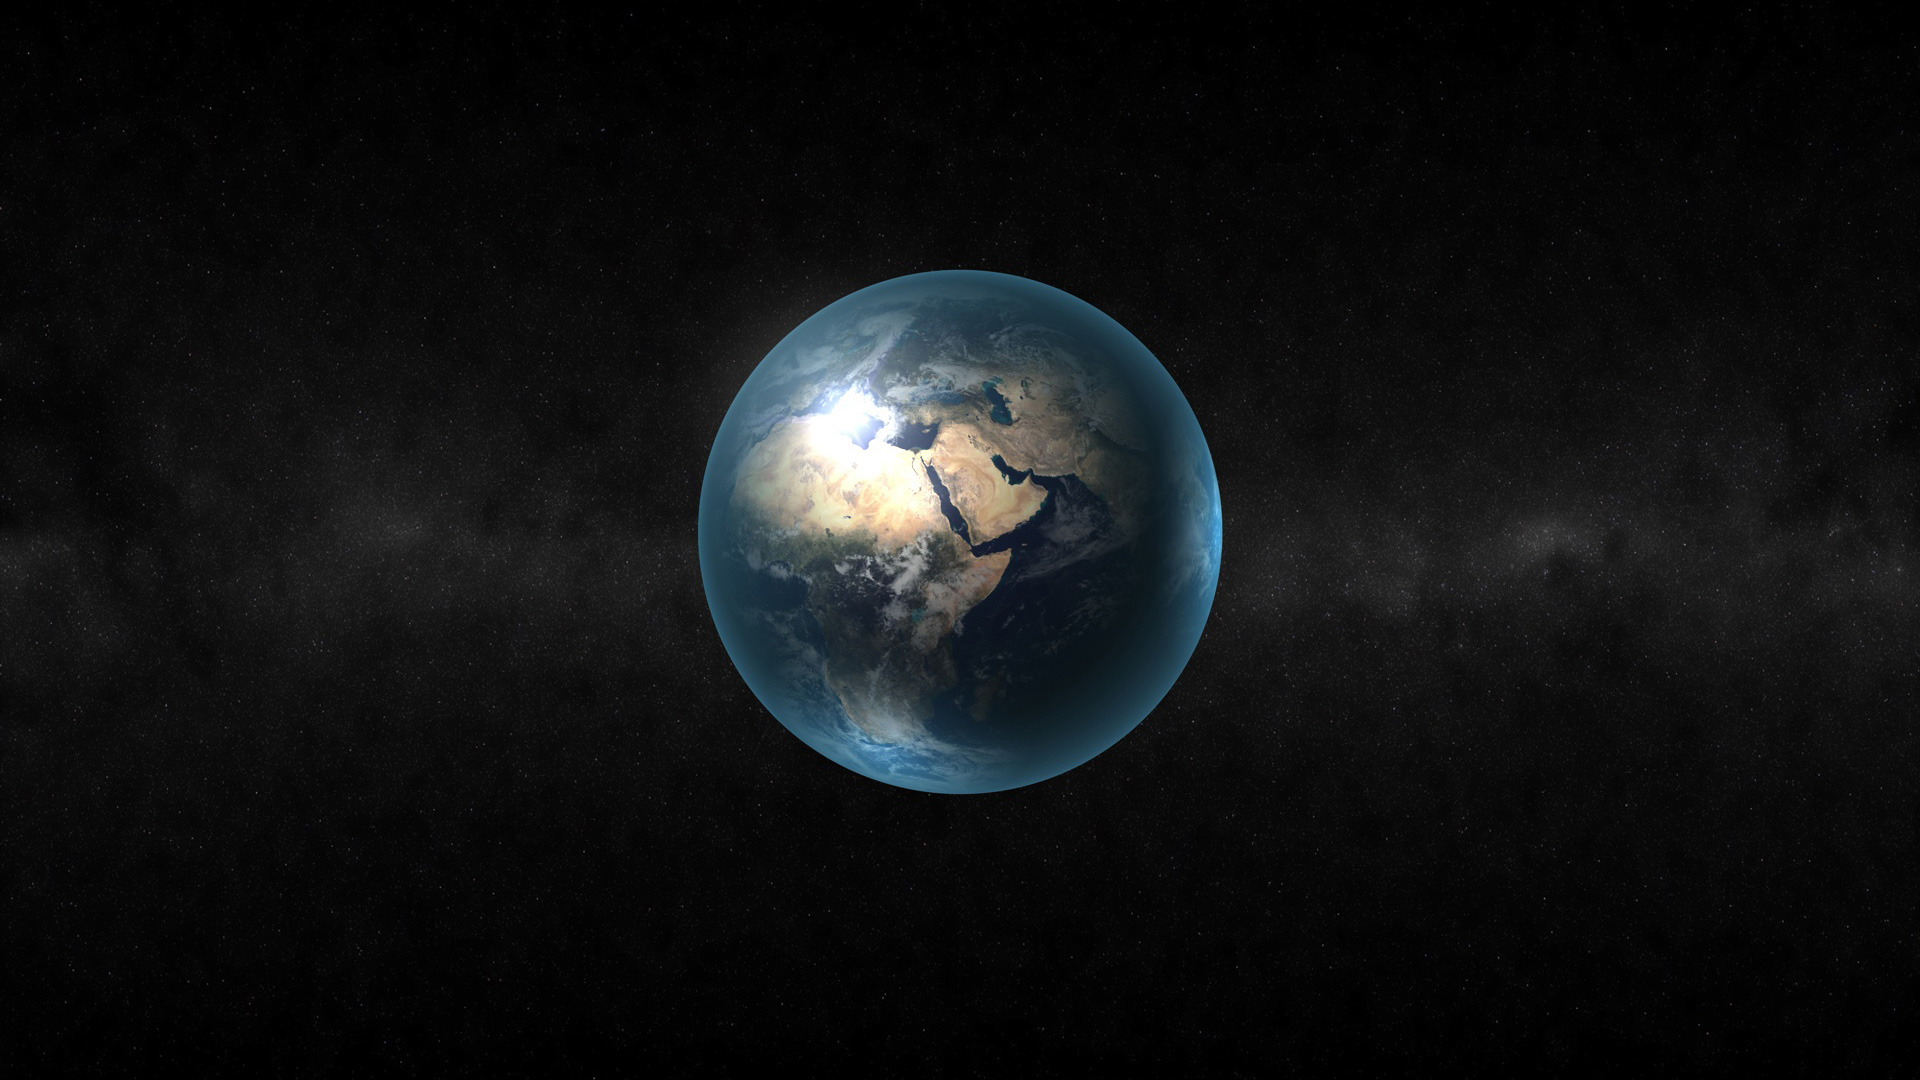 HD Planet Earth Wallpapers HD Wallpapers 1920x1080